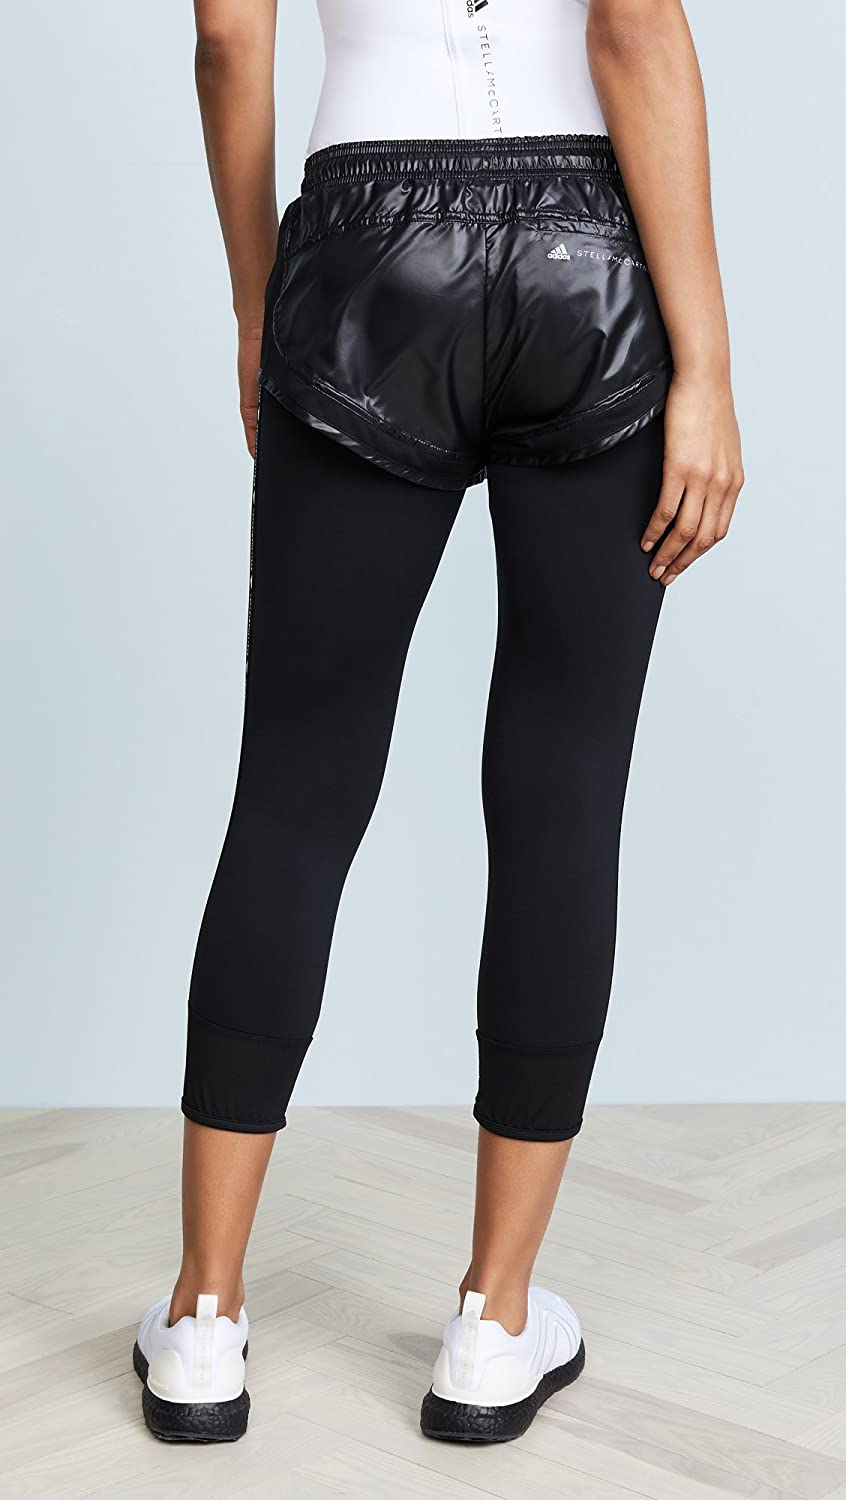 df60f94fffd adidas by Stella McCartney Women's Performance Essentials Shorts Leggings  at Amazon Women's Clothing store: